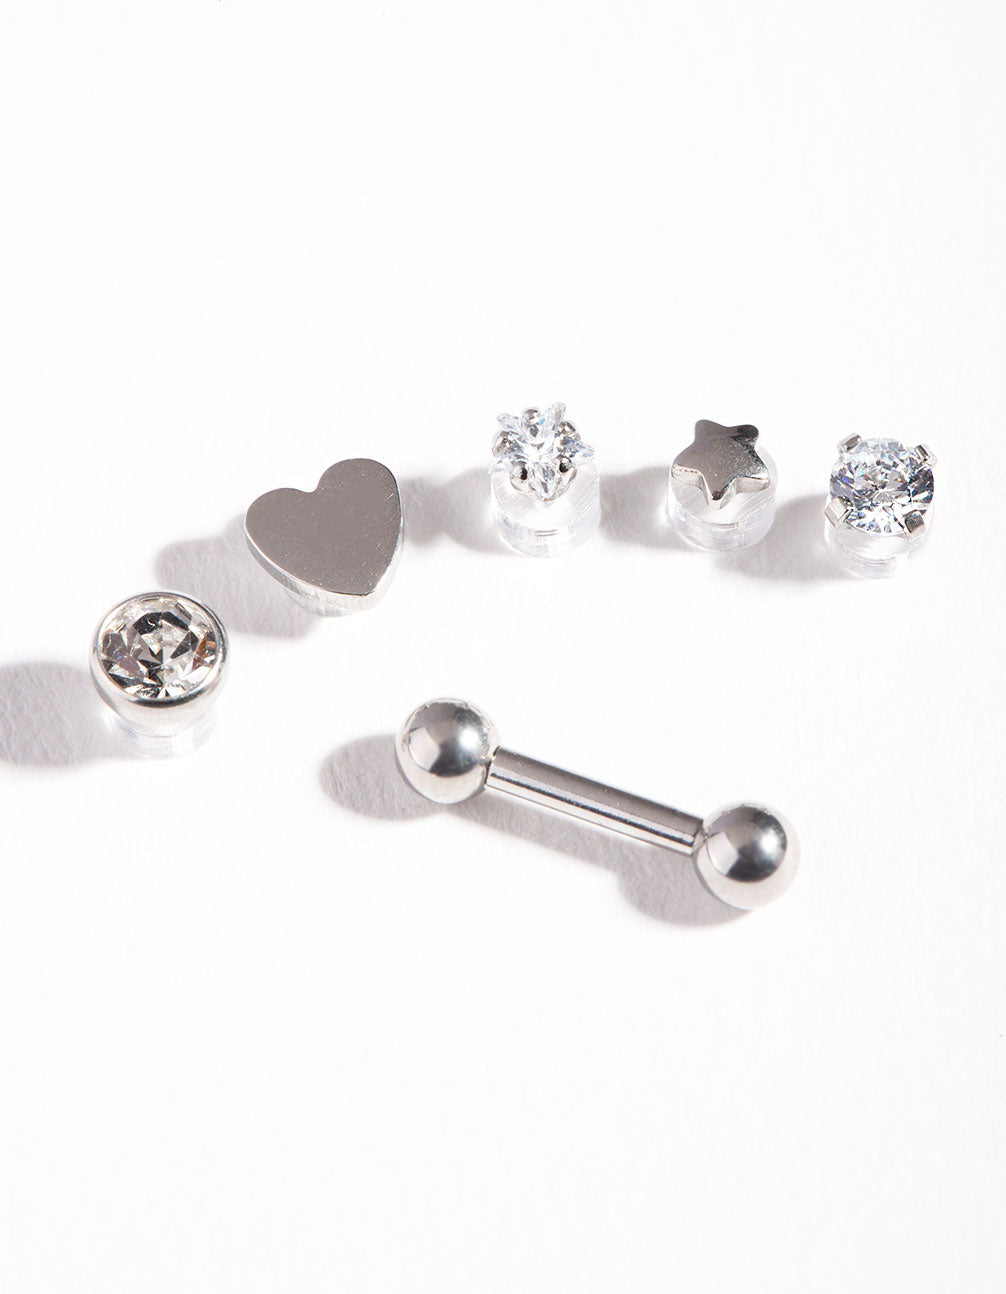 Rhodium Surgical Steel Cubic Zirconia Heart Barbell Pack